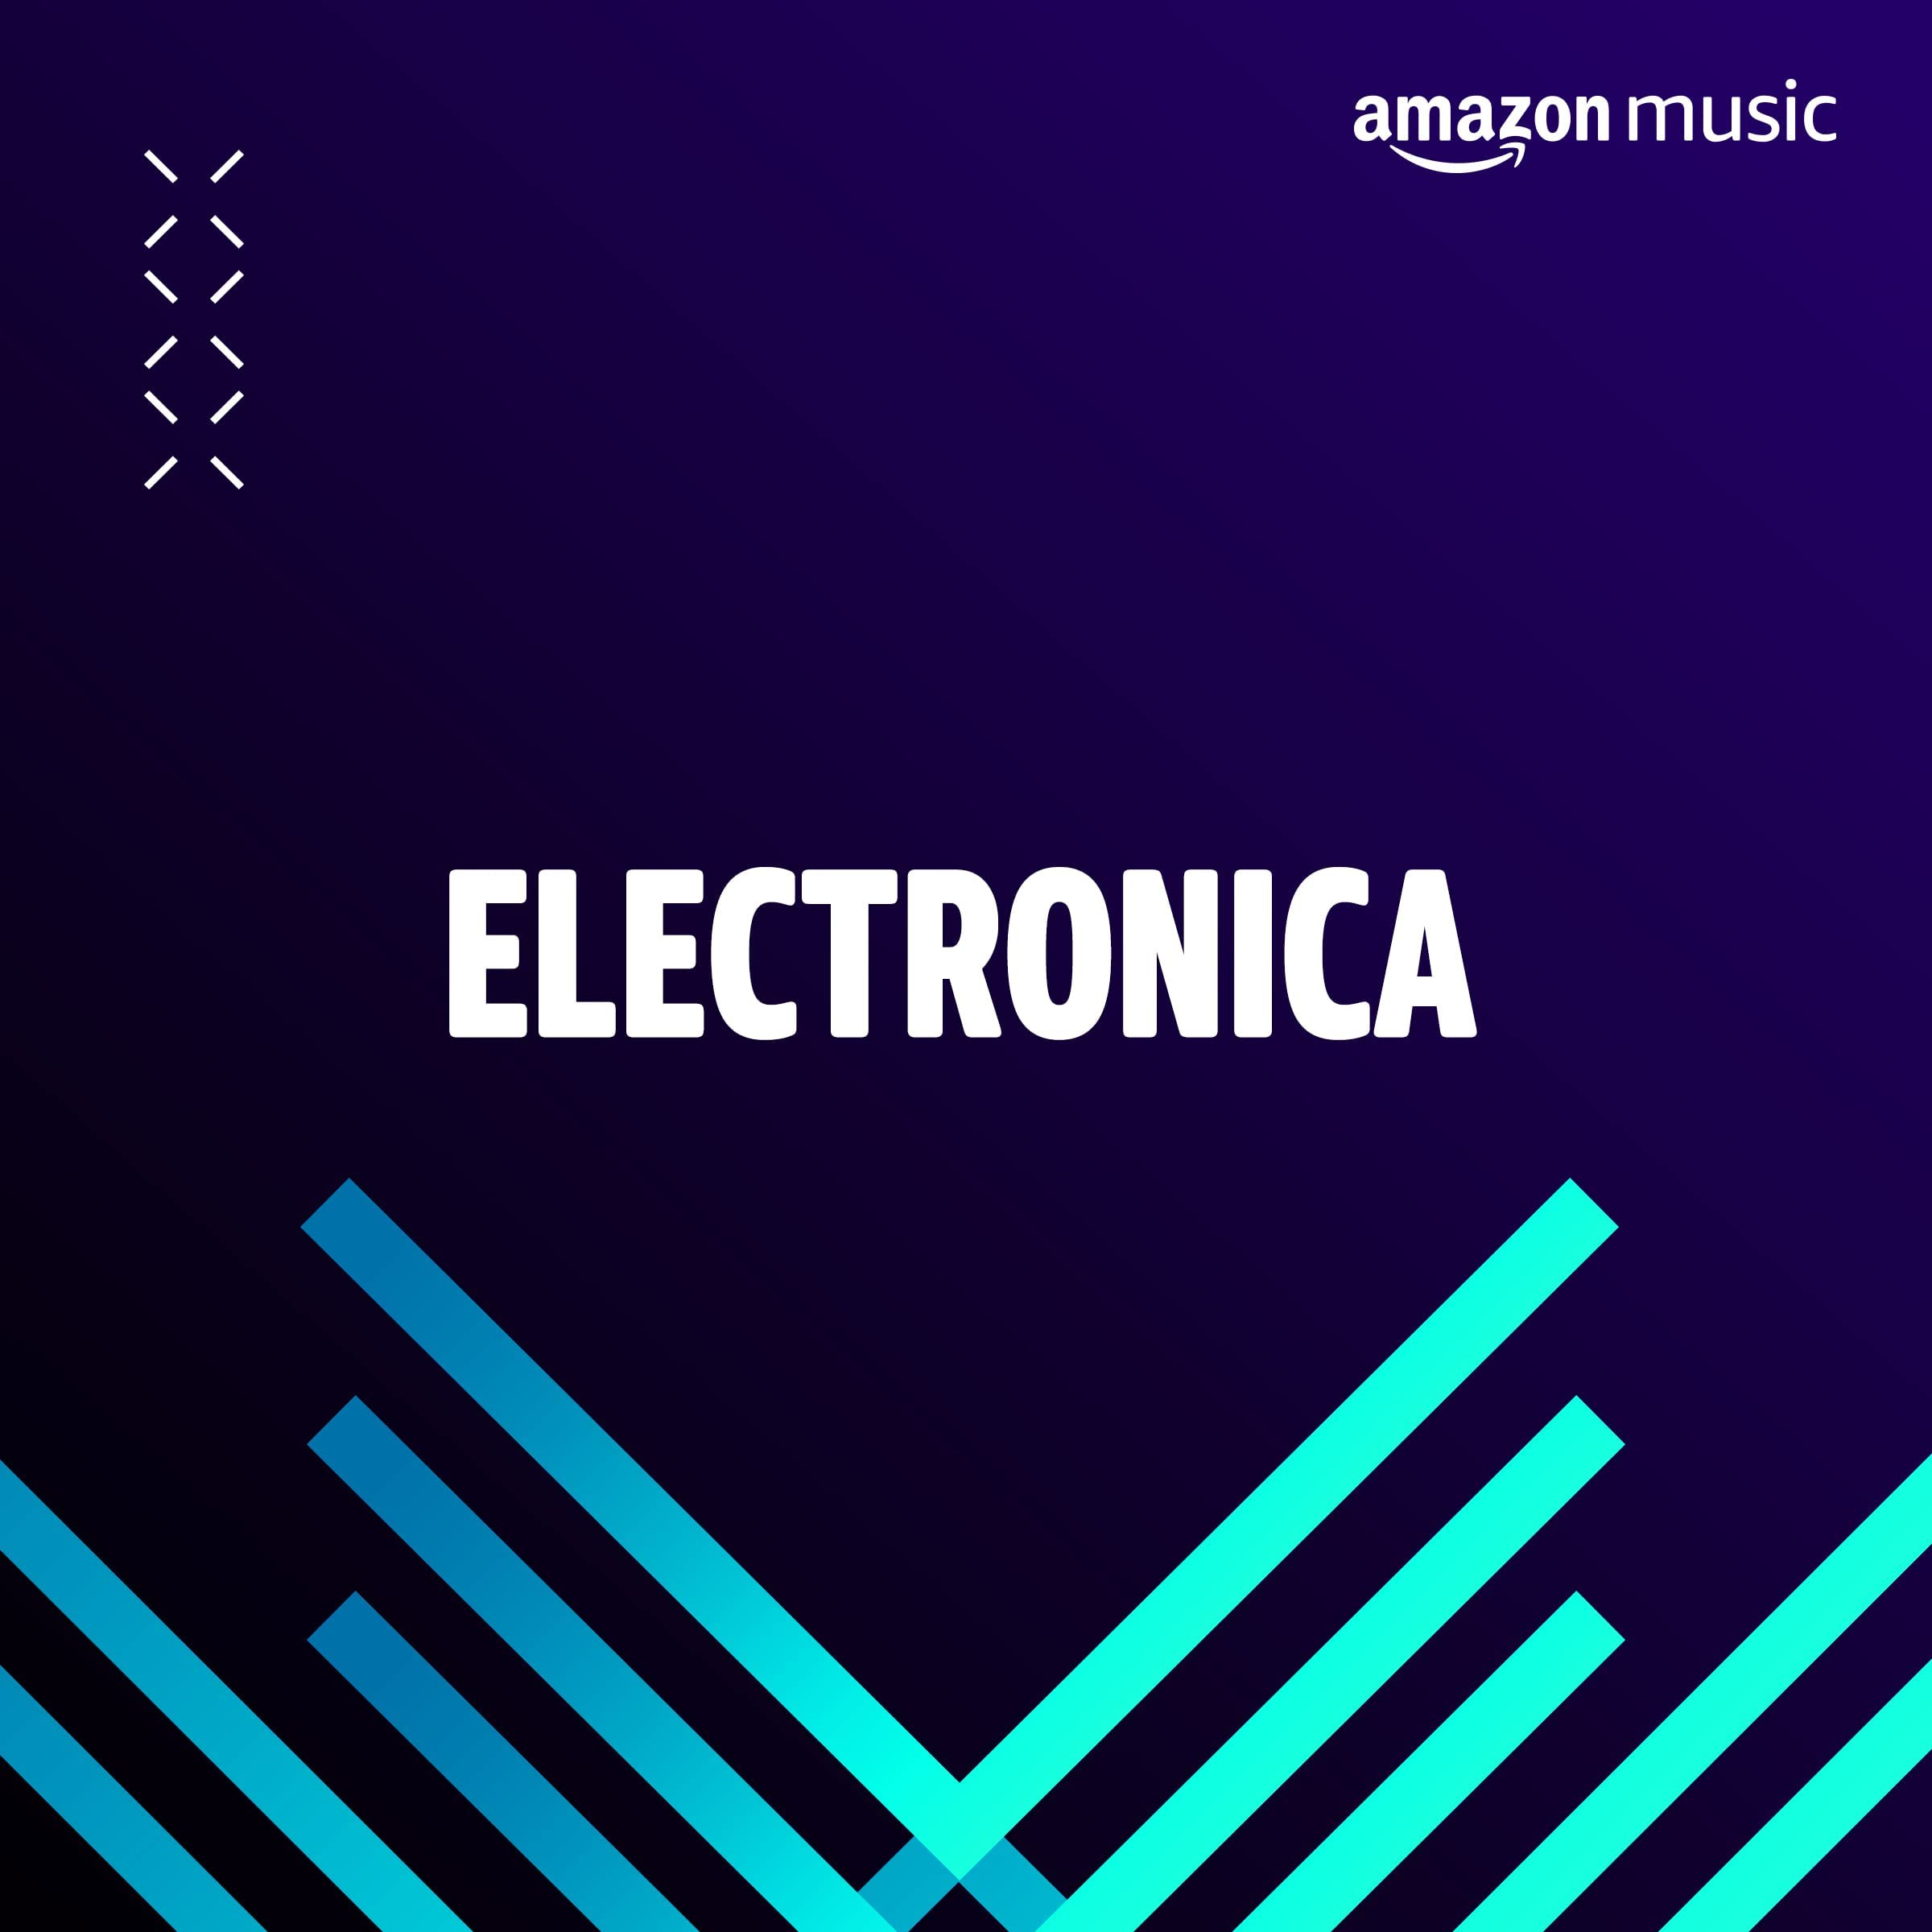 Electronica